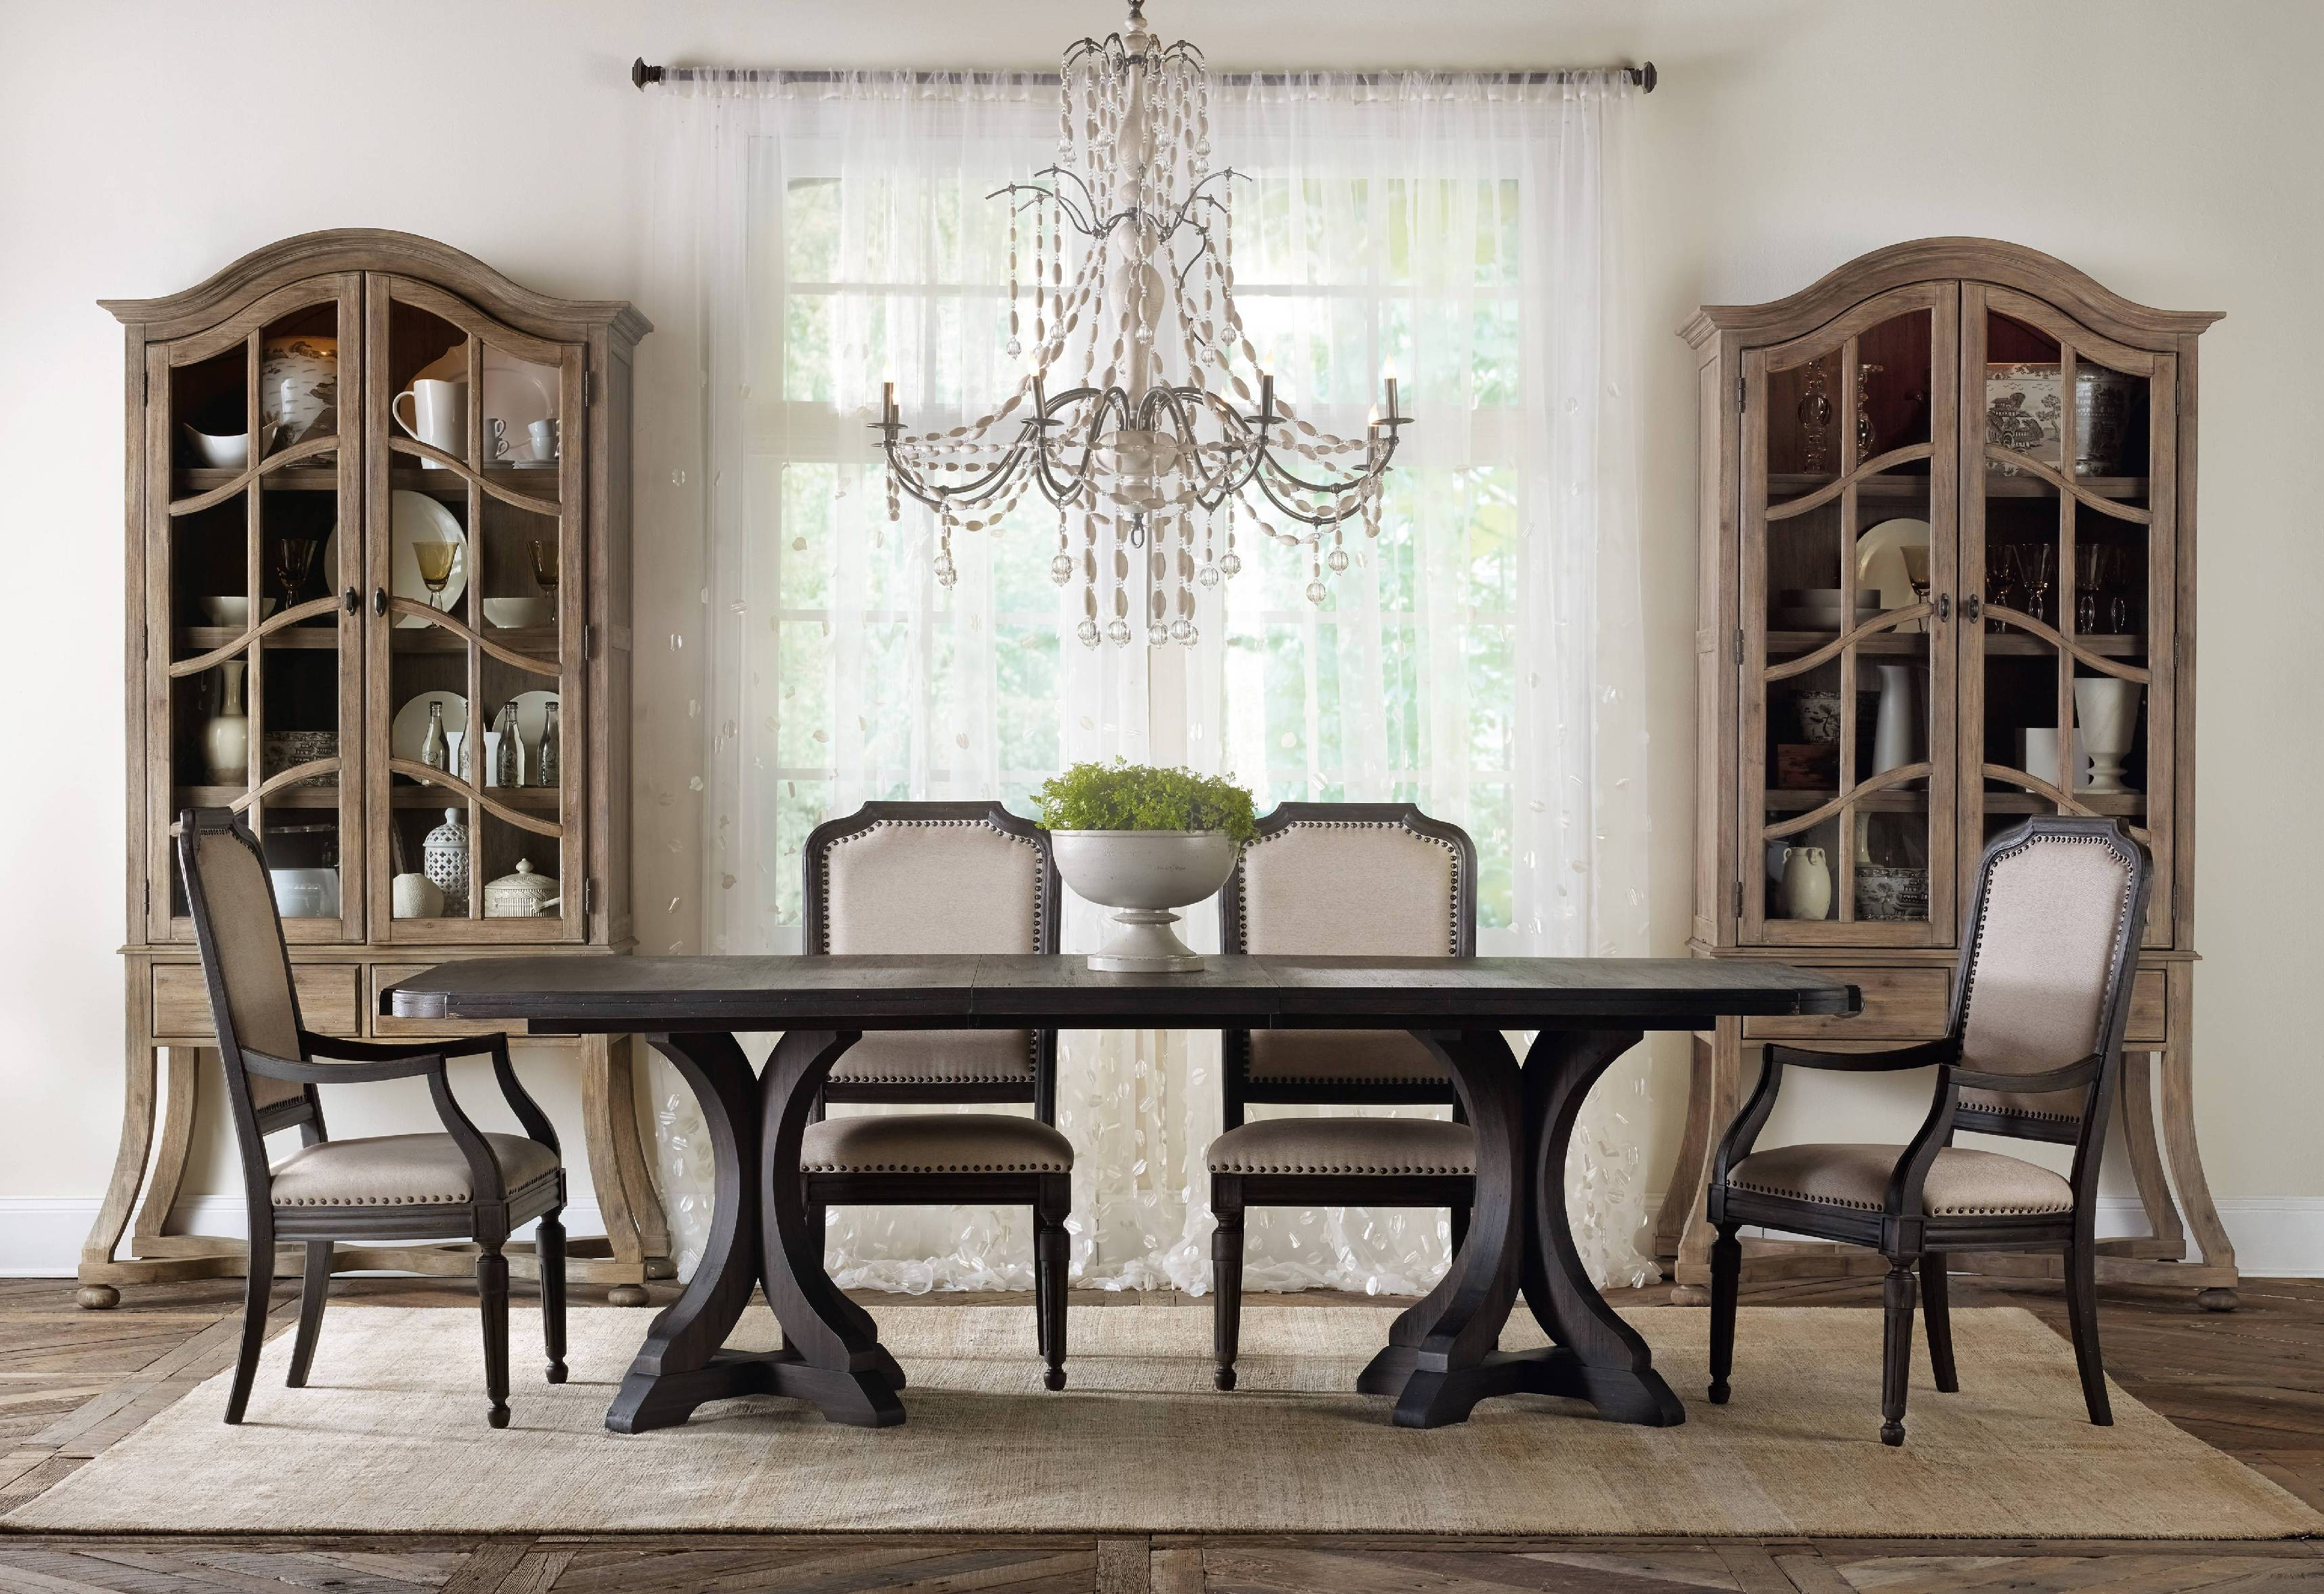 Dazzling Pedestal Dining Table And Chair For Dining Room With Round  Pedestal Dining Table